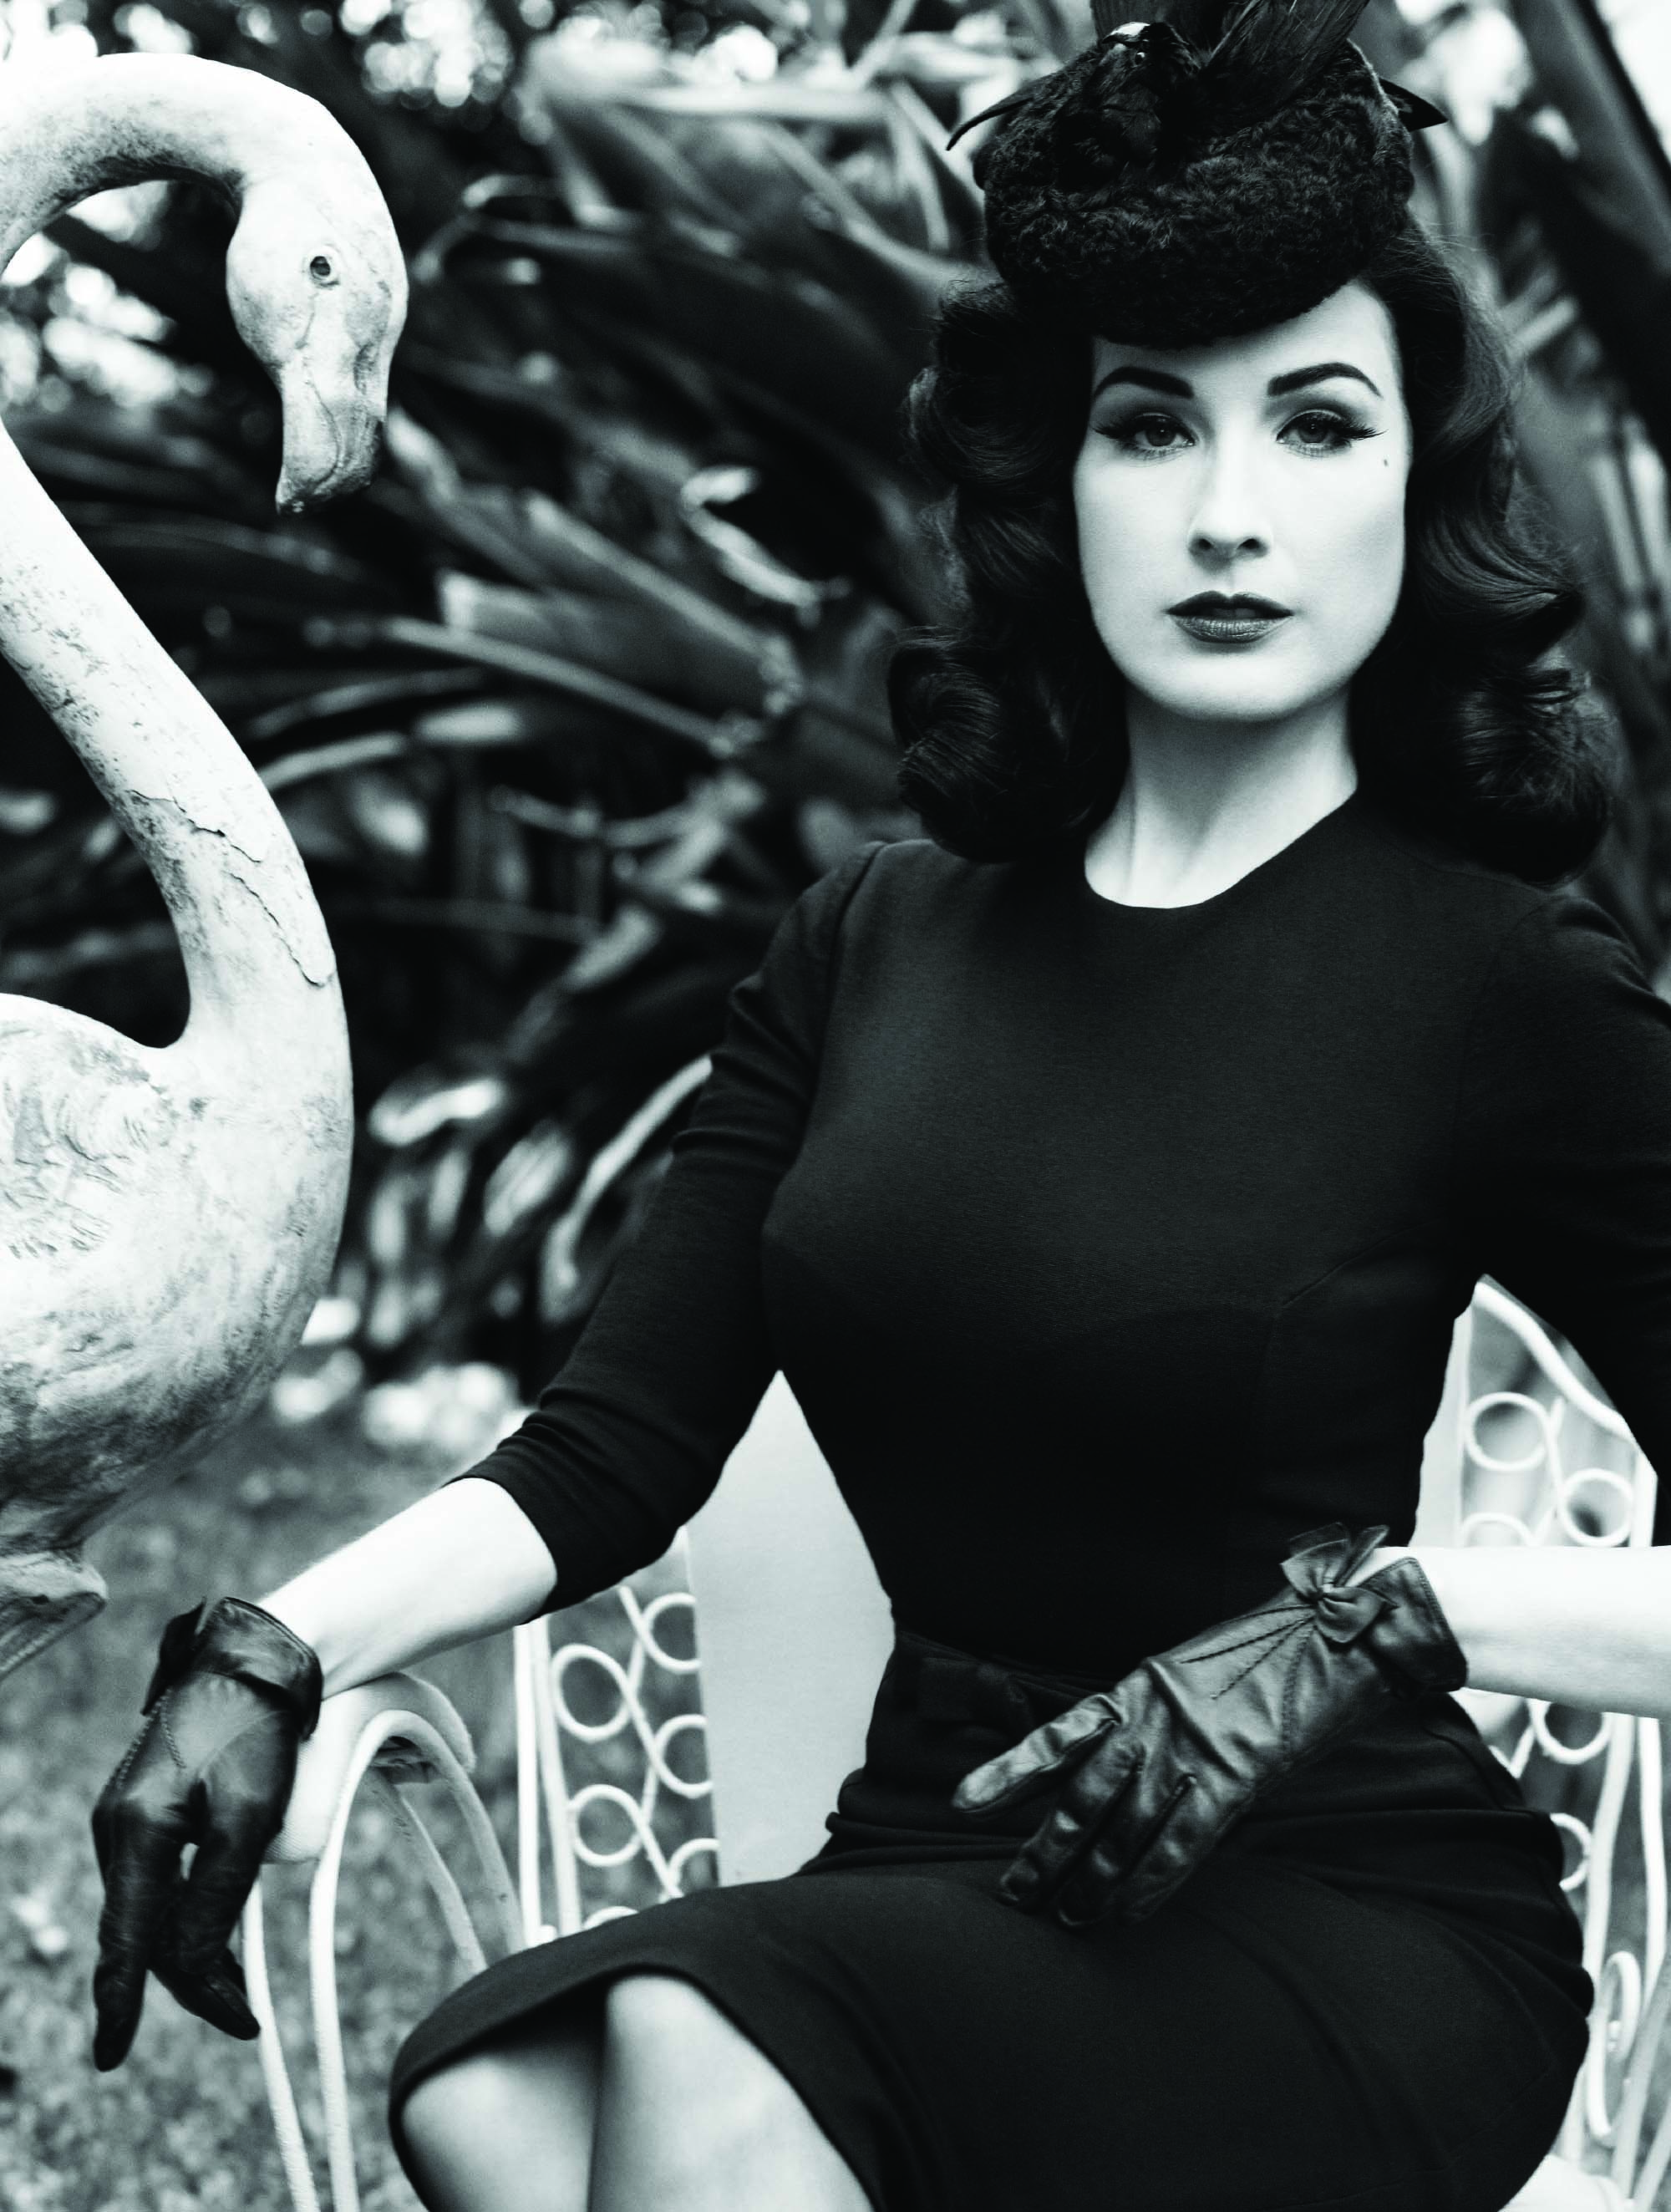 f60c7f636fac Take Your Time on Those Curves: Dita Von Teese — Flaunt Magazine